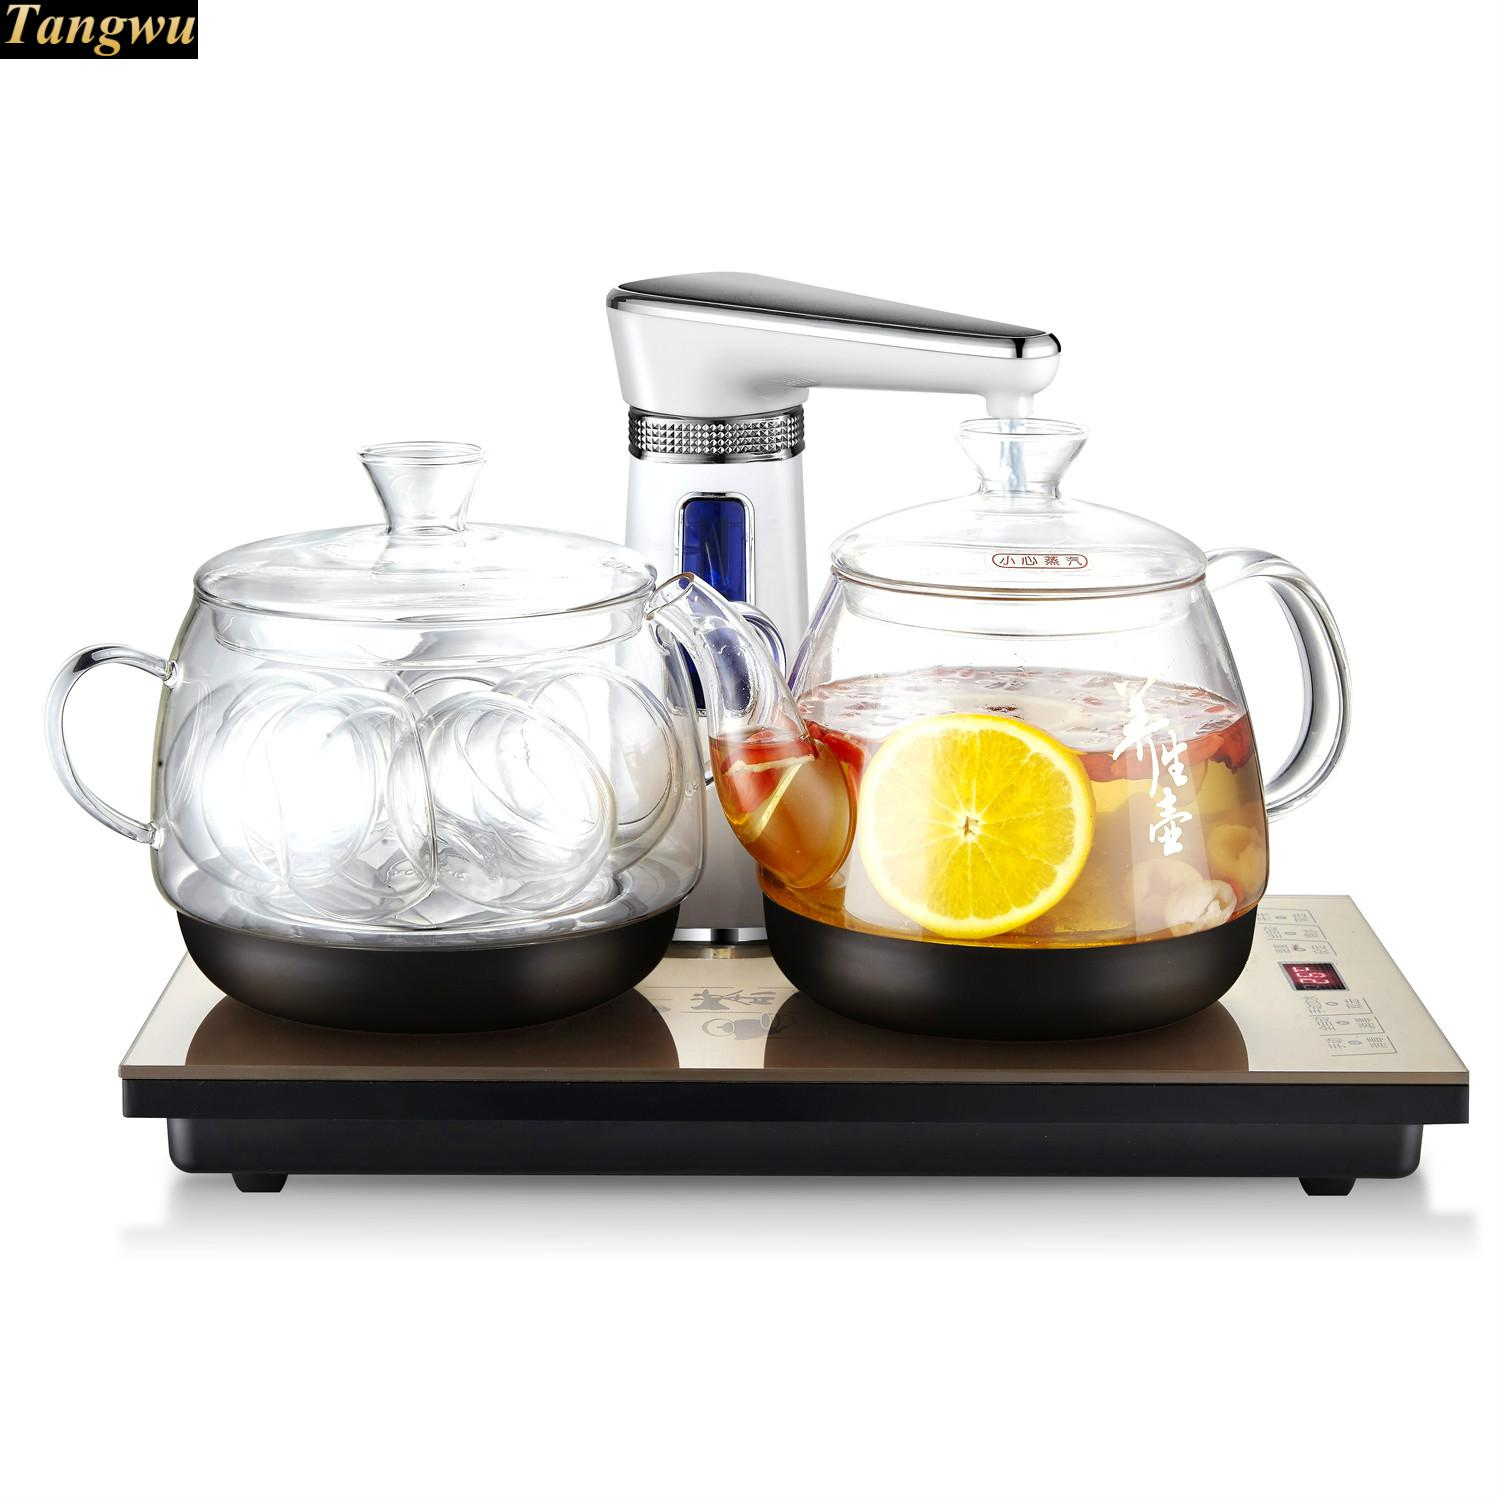 Fully Automatic Water Electric Kettle Intelligent Tea Stove Hot Teko Listrik Pemanas Air Electrik 15 Liter Bubble Teapot In Kettles From Home Appliances On Alibaba Group